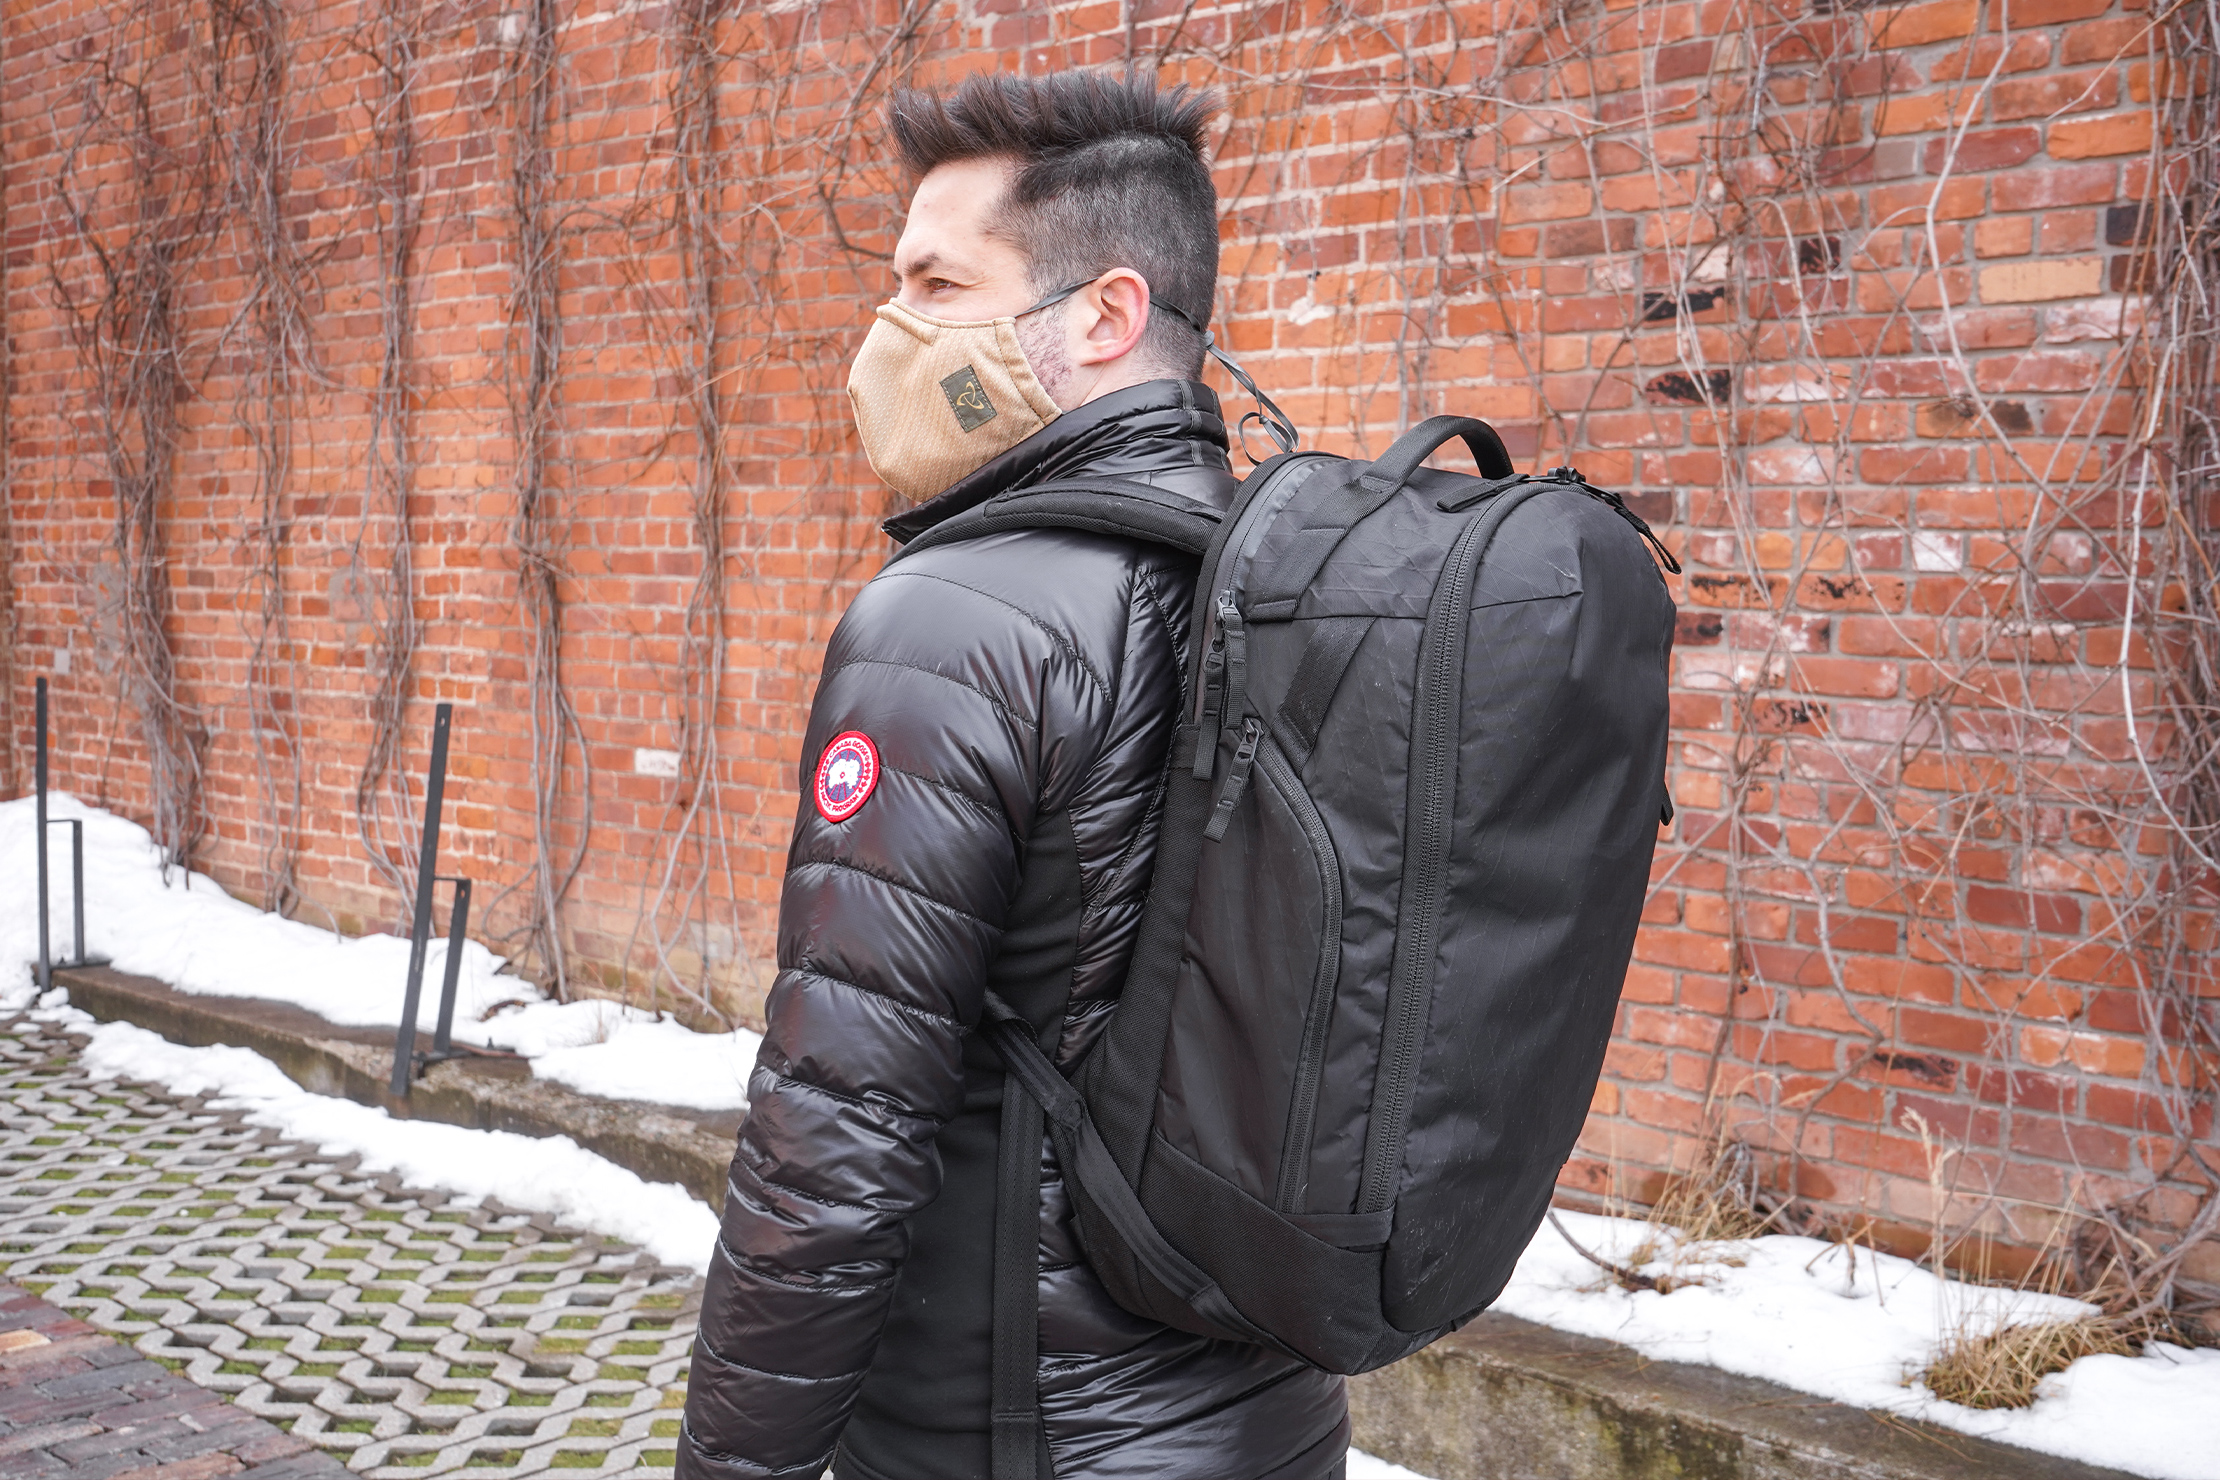 Able Carry Max Backpack | Carrying the backpack to work